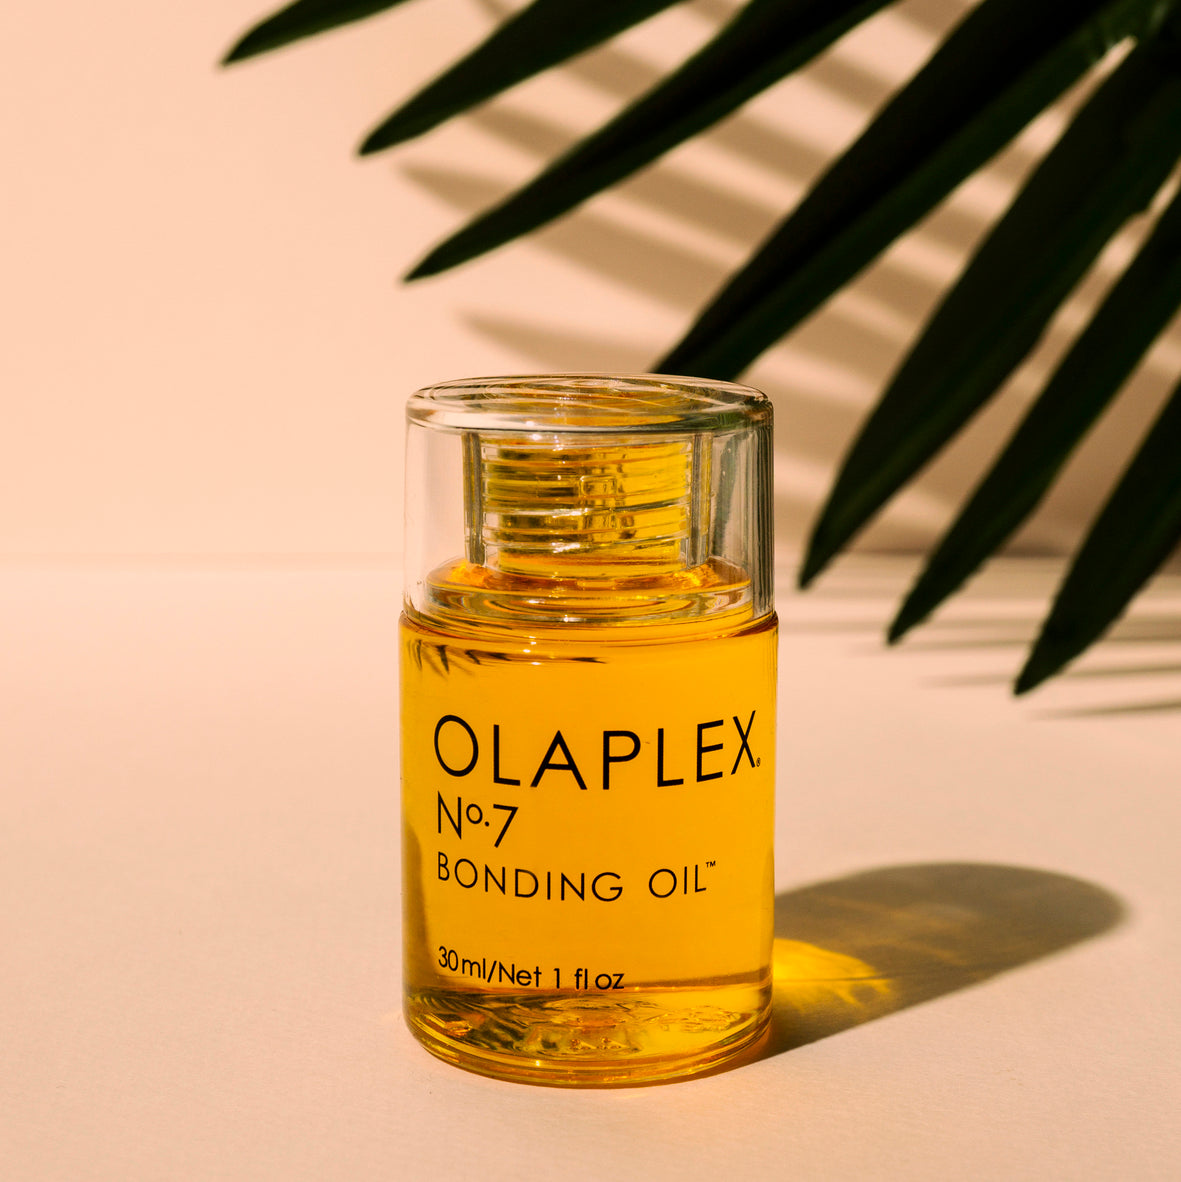 How to Bond with your No.7: Uses for Olaplex No.7 Bonding Oil